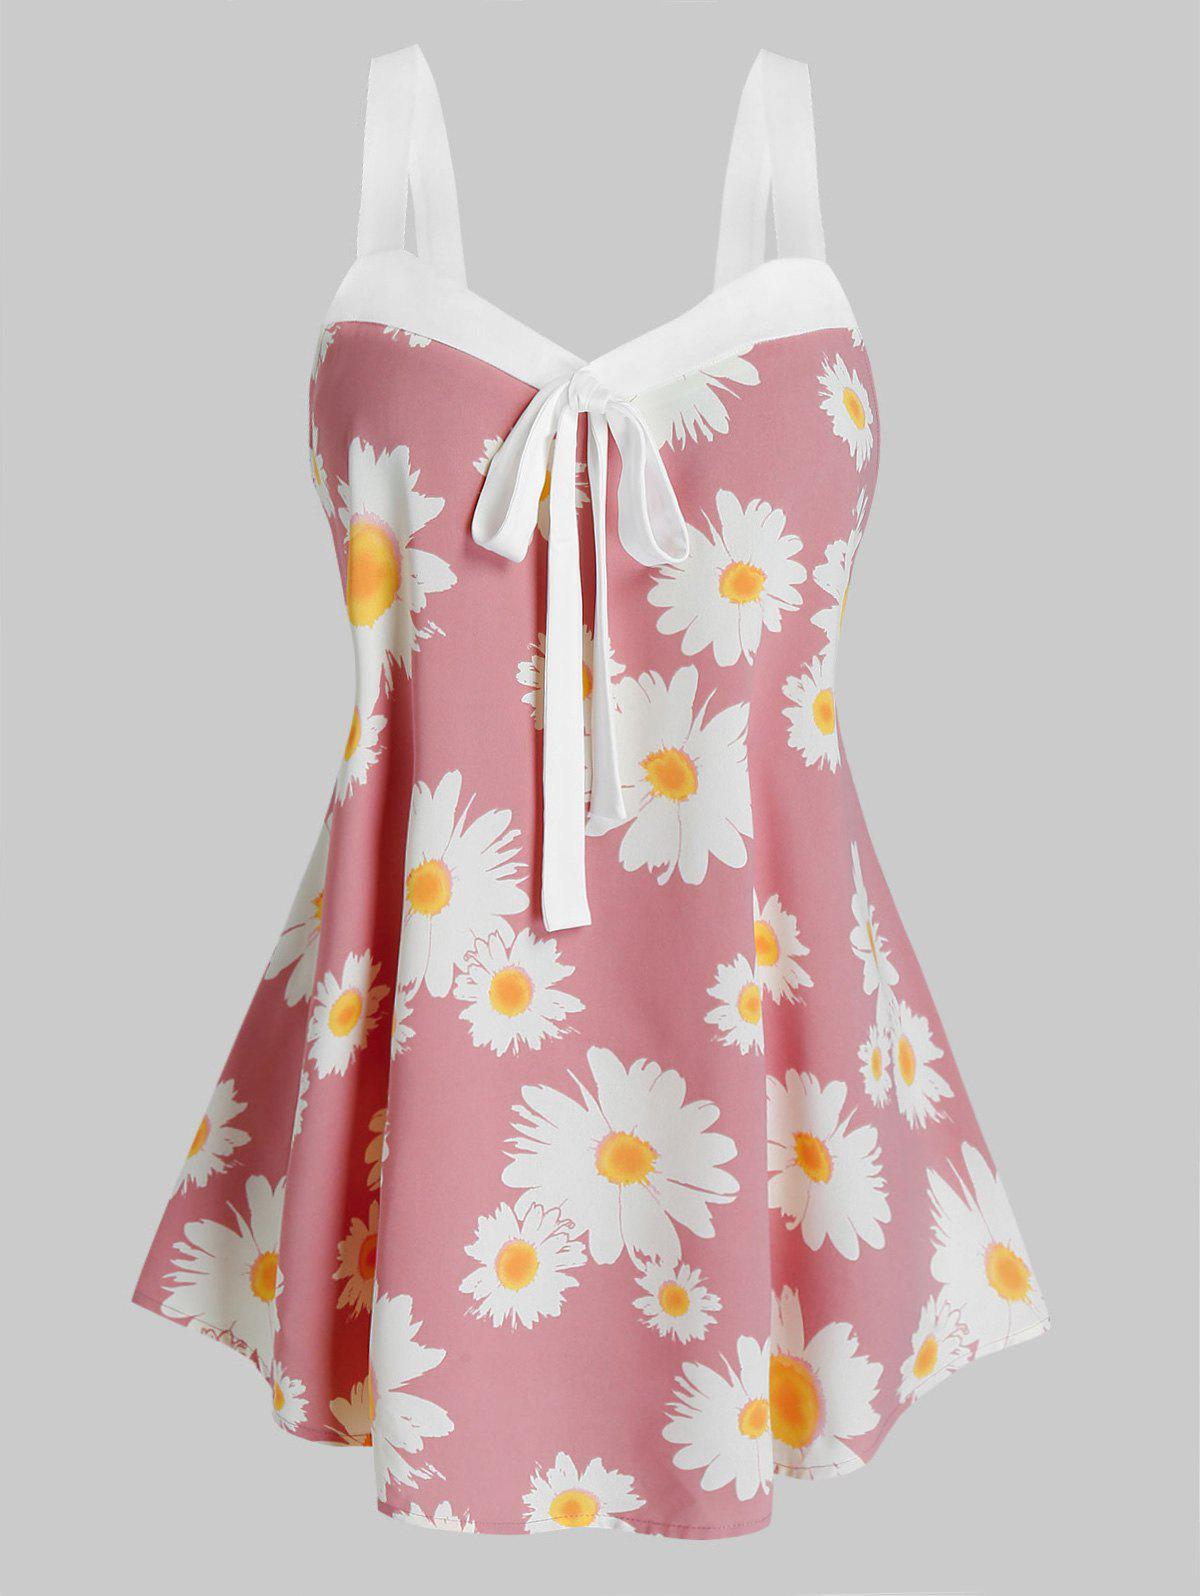 Plus Size Daisy Flower Knot Backless Tank Top - PINK ROSE 5X